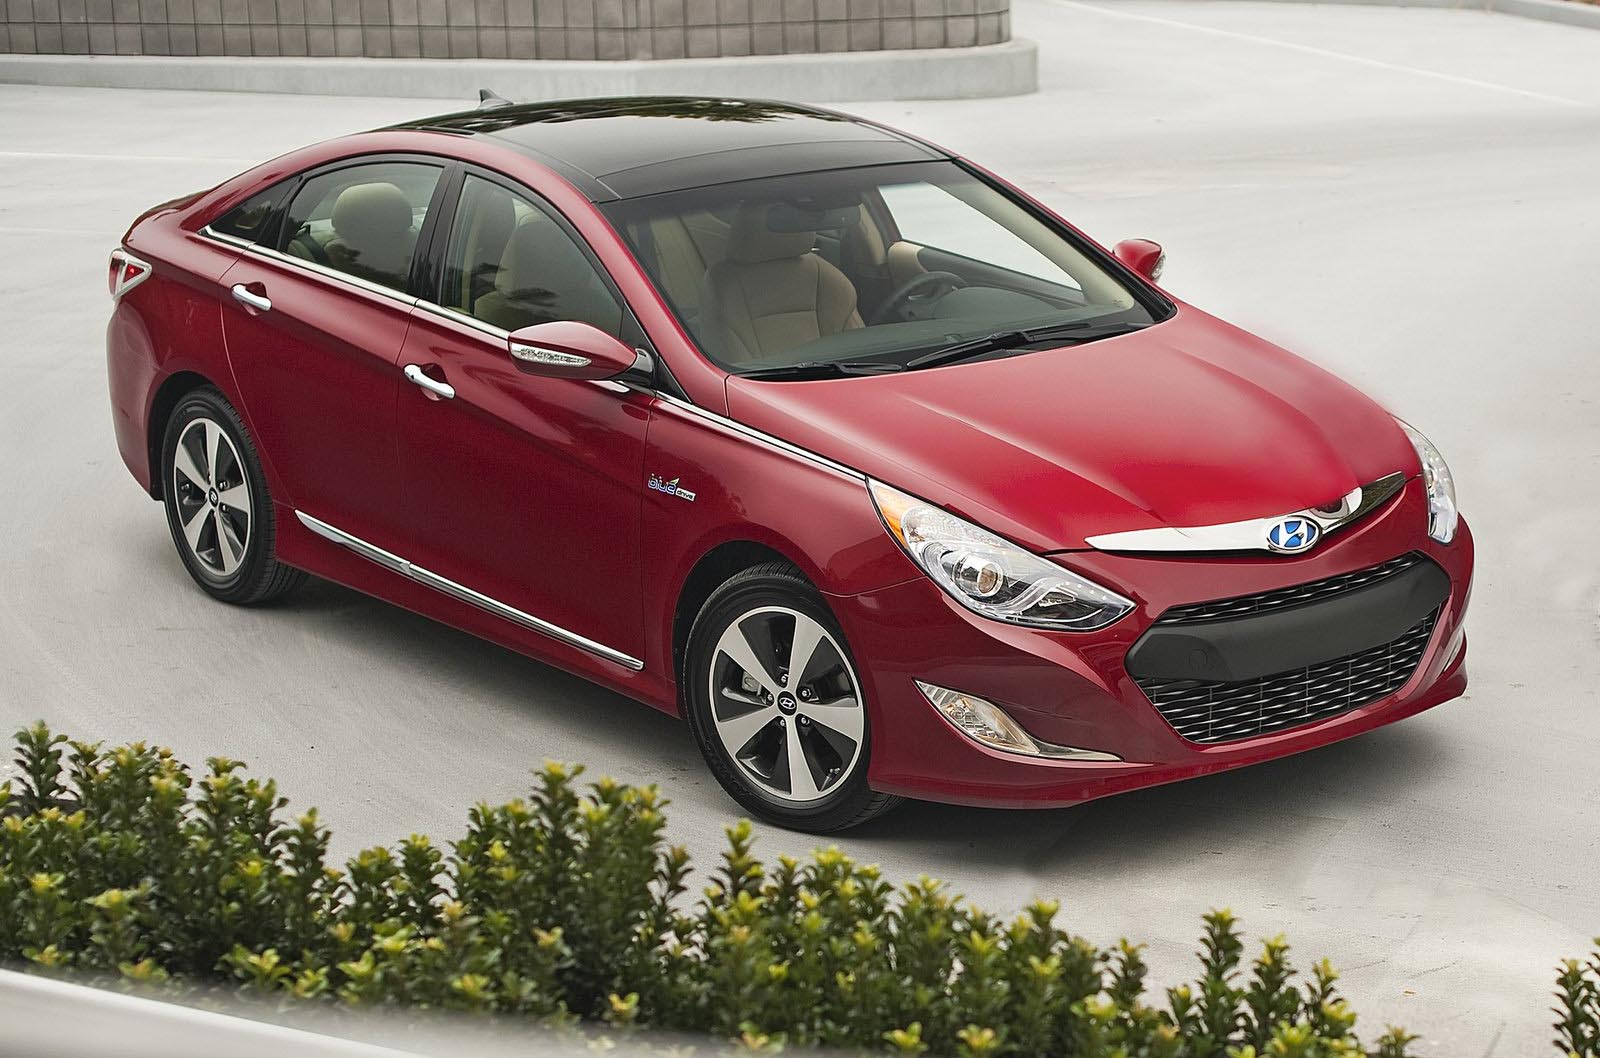 Browse 2015 Hyundai Sonata Hybrid Concepts similar images and photos resizer free download